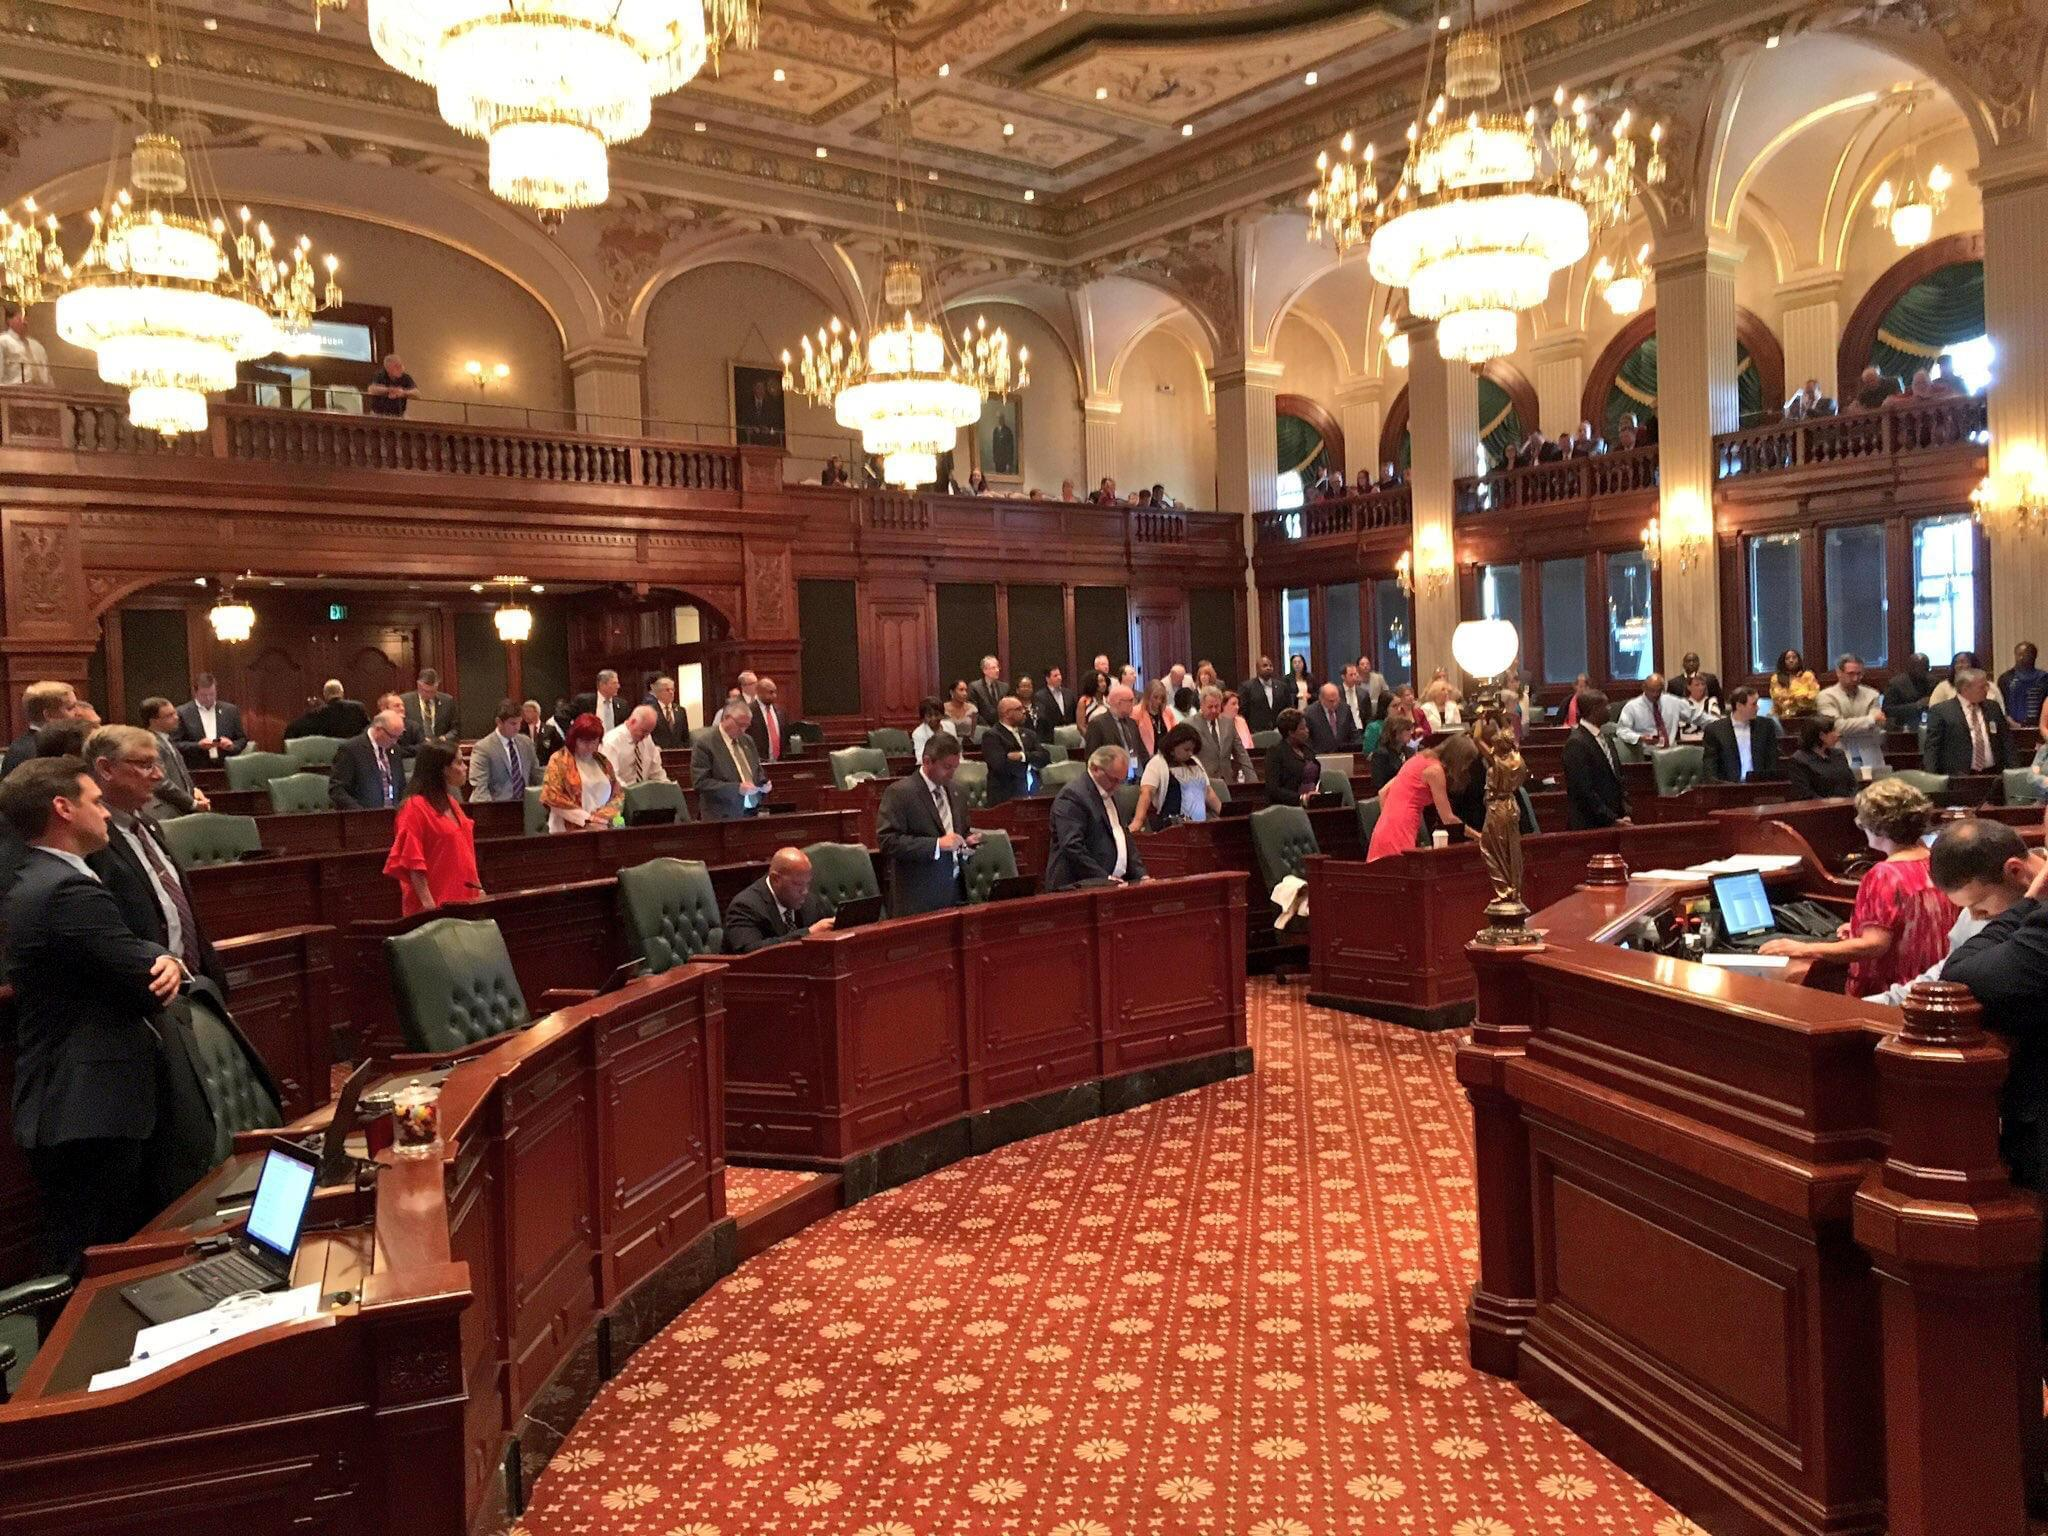 Members of Illinois House of Representatives stand in support of Rep. Jaime Andrade's denunciation of a political cartoon using racial stereotypes to make a point about school funding.